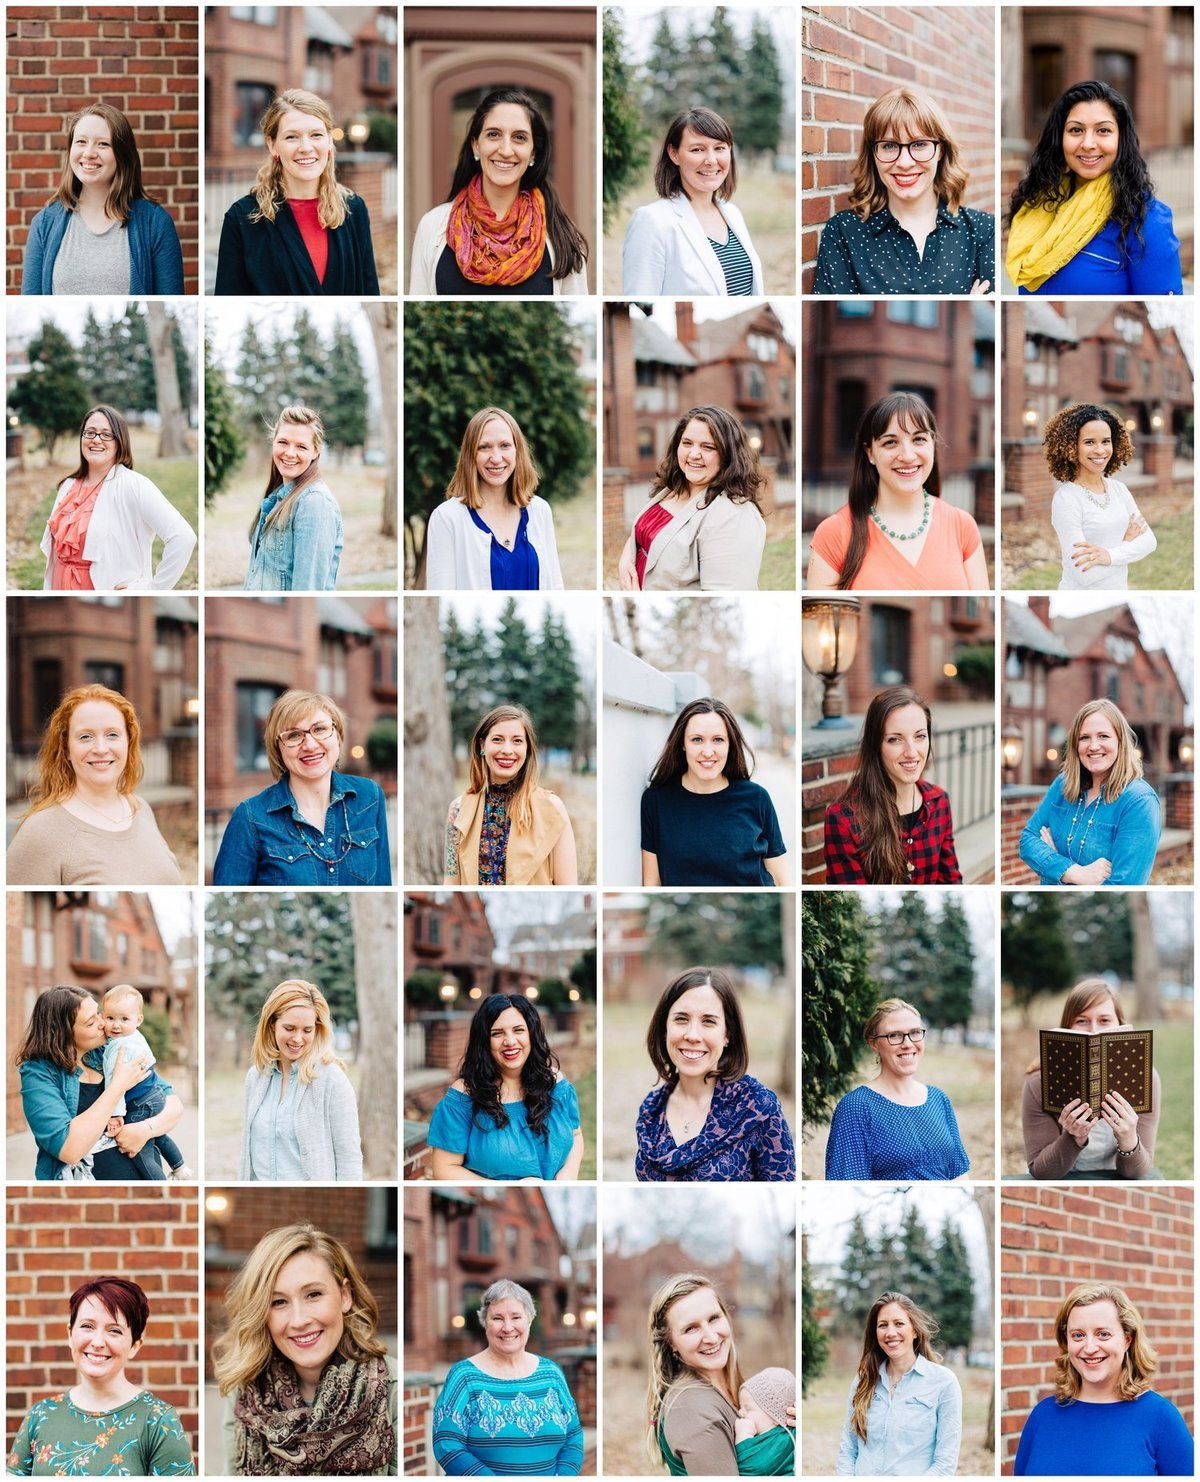 Catholic-Women-Bloggers-Conference-CWBN-Twin-Cities-Minnesota-Collage